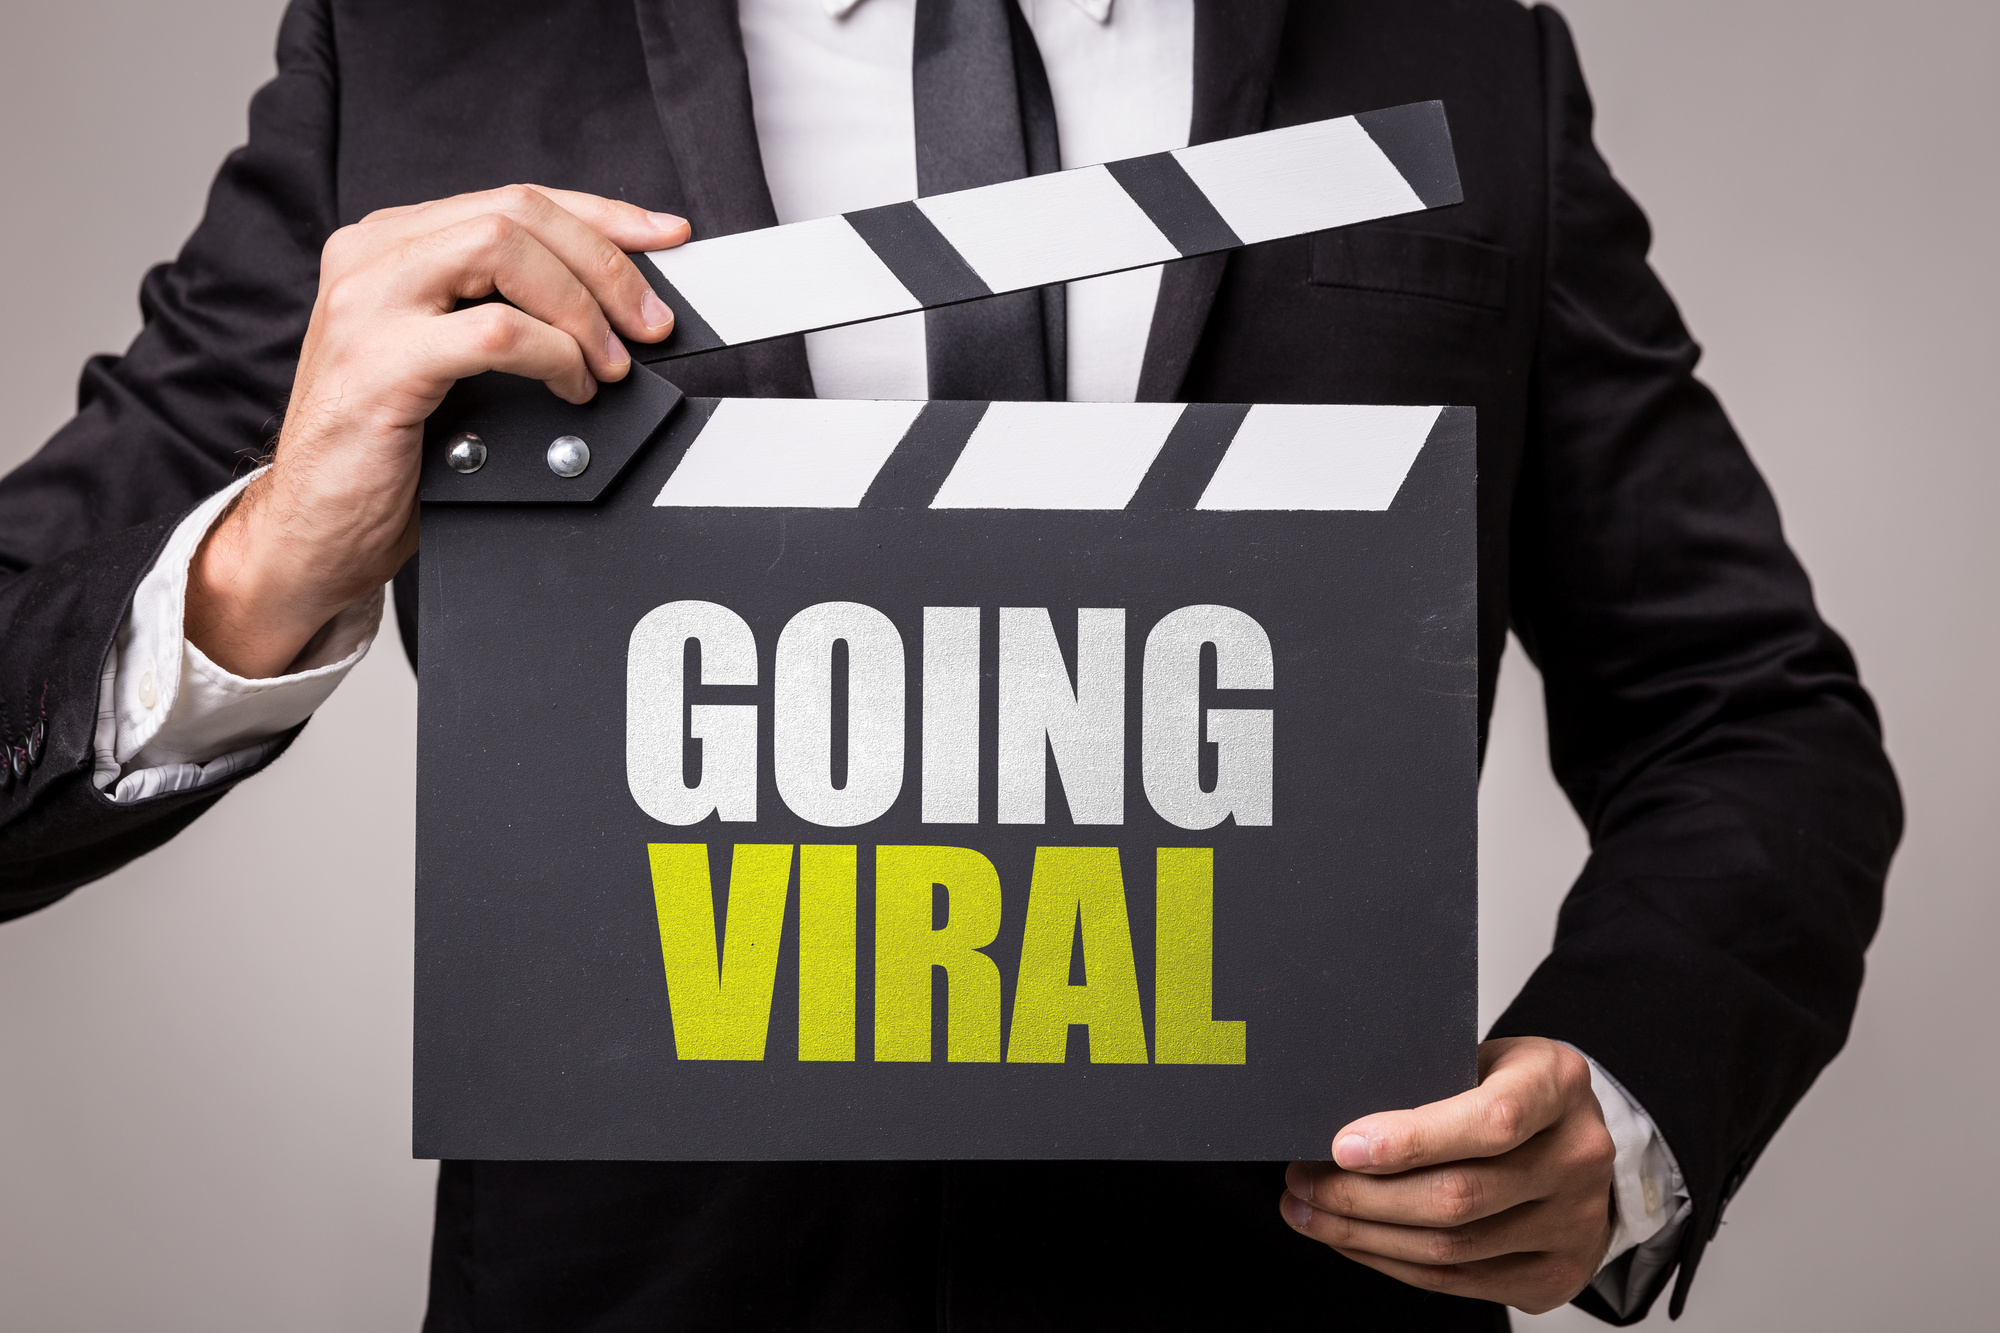 Start Going Viral: 7 Ways to Attract Thousands